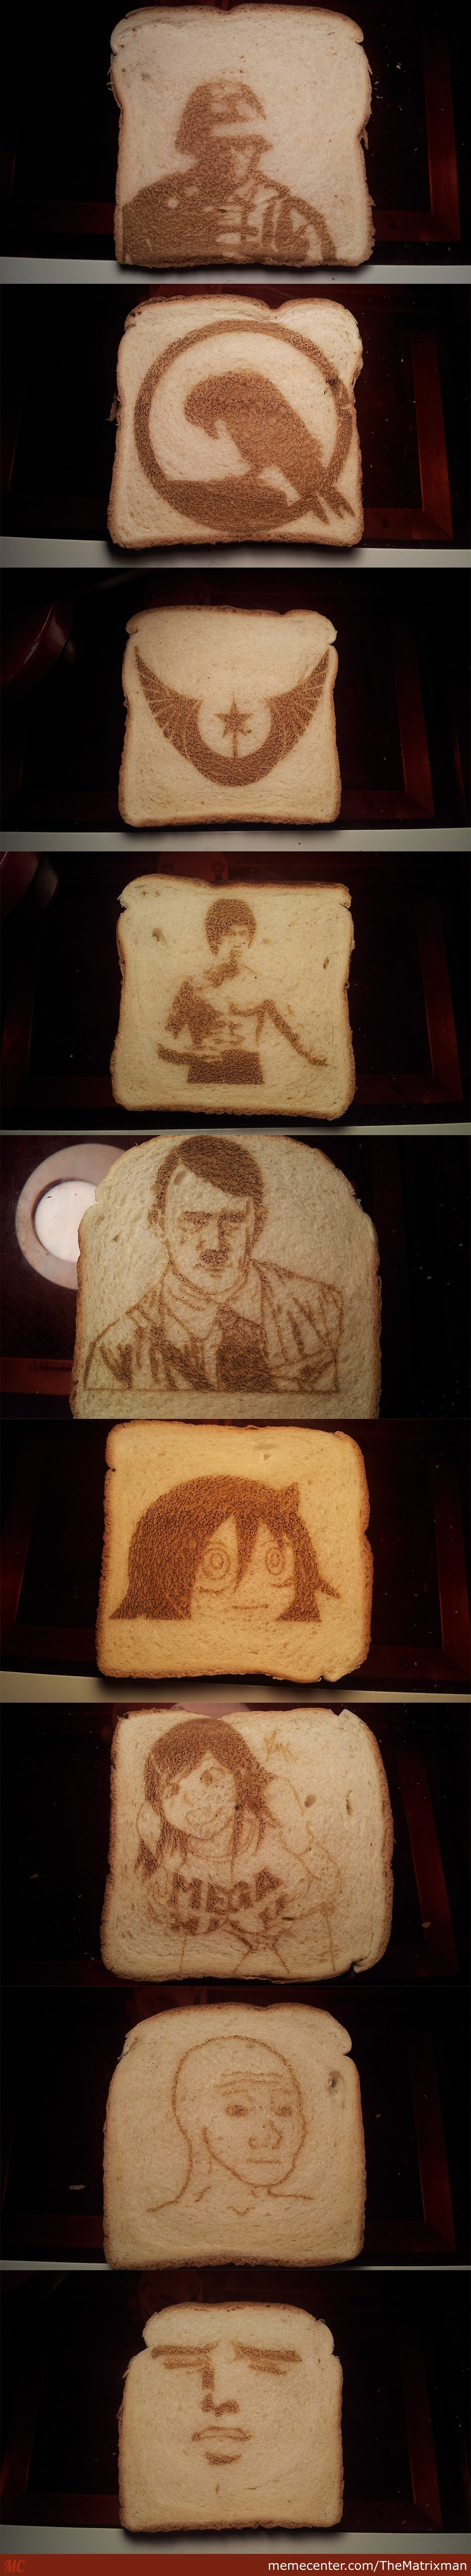 Toasting In Epic Bread